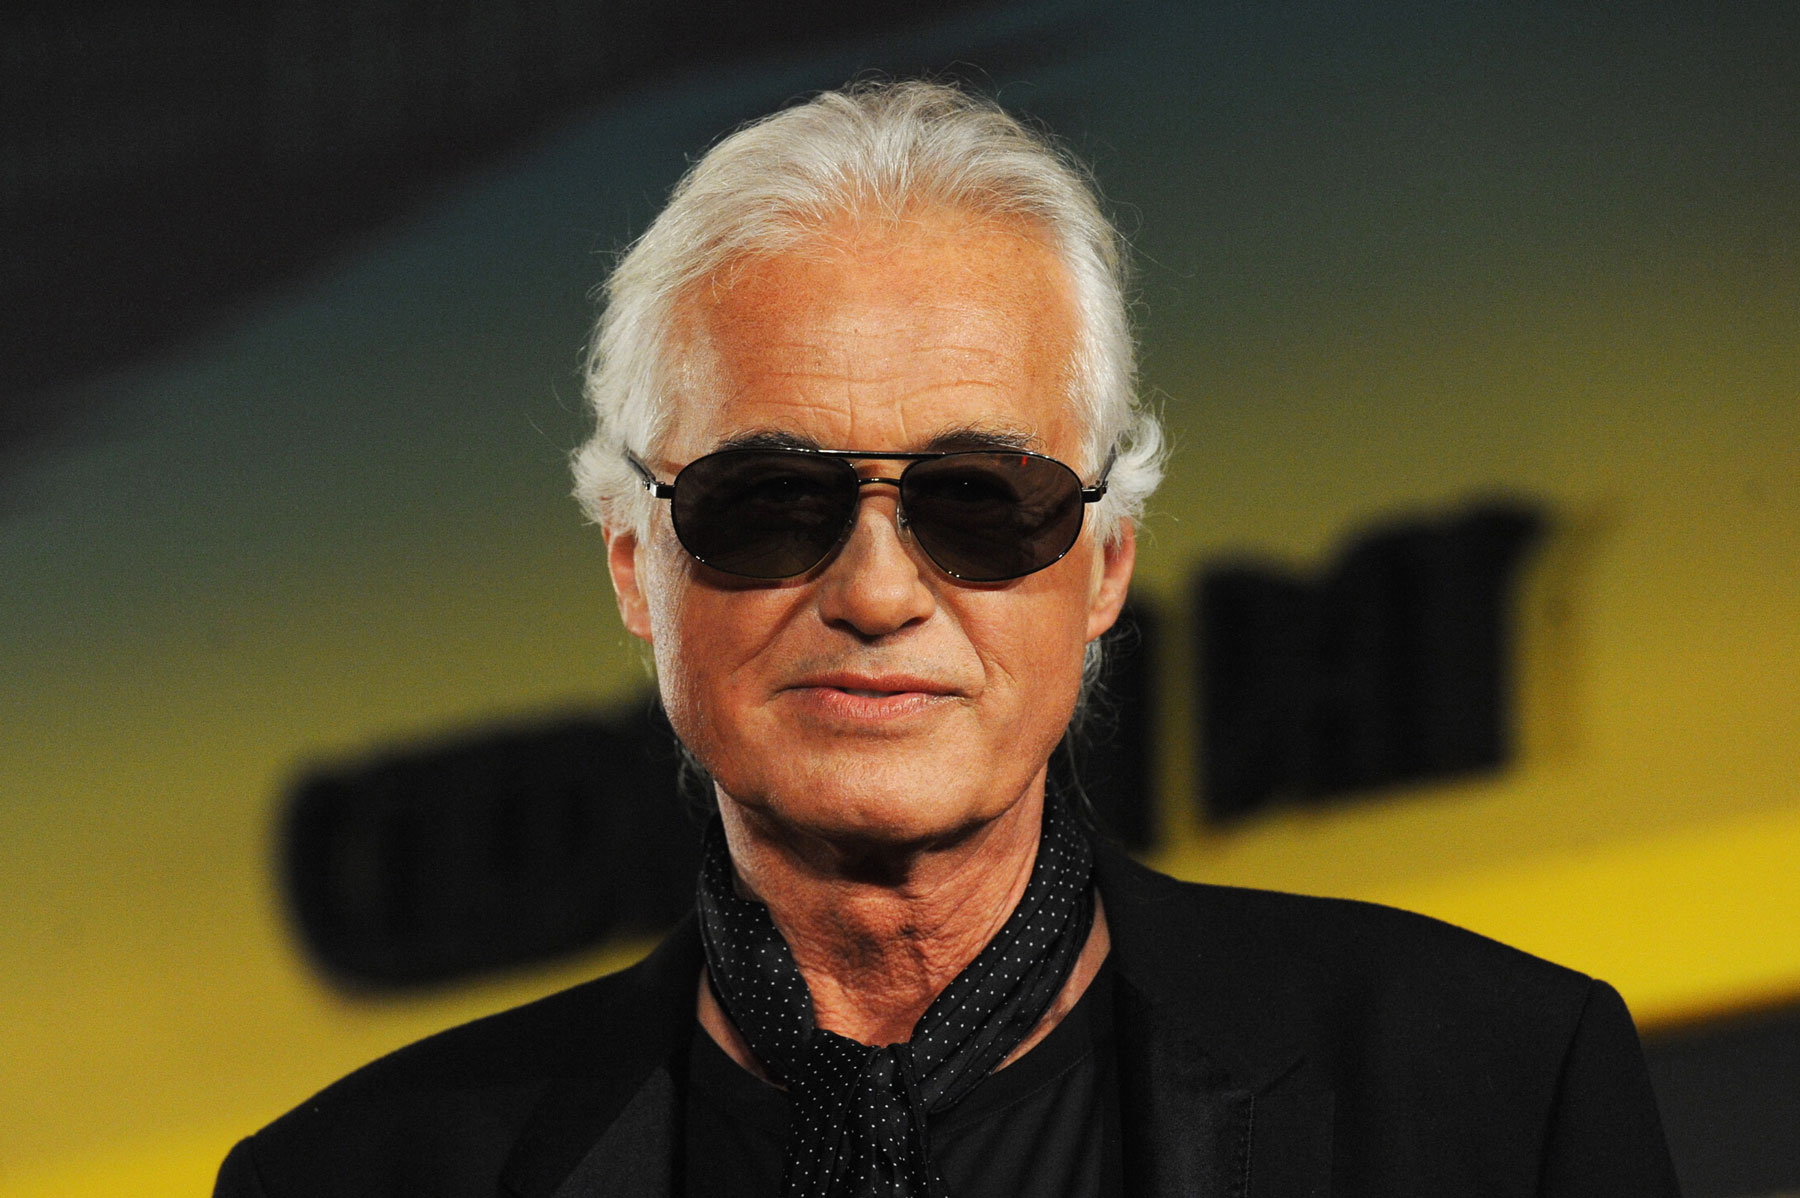 Jimmy Page to Receive Honorary Doctorate From Berklee College of Music